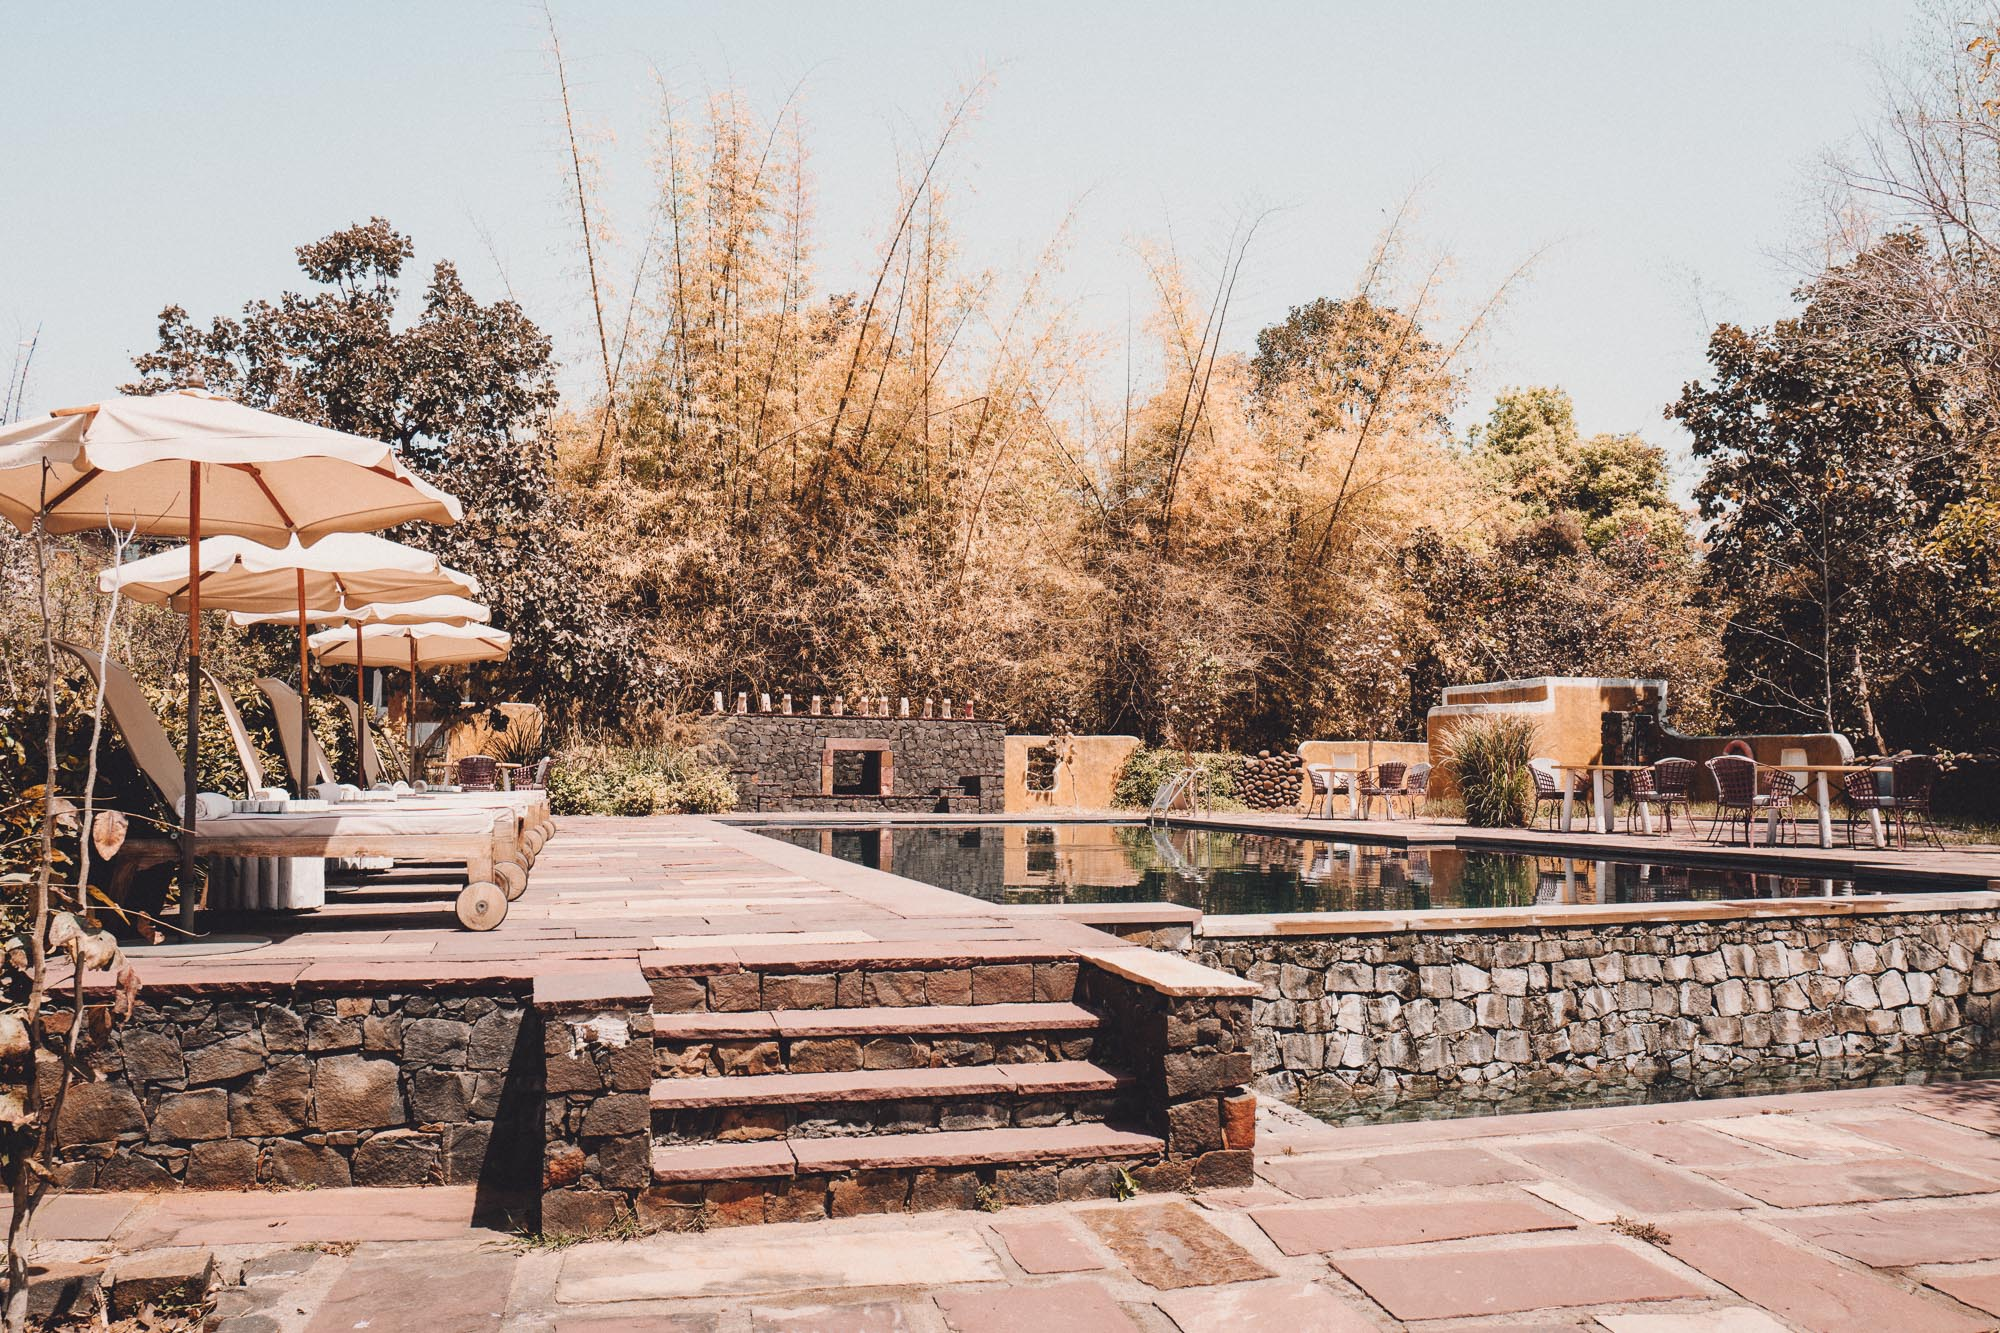 Tiger Safari at Samode Safari Lodge in Ranthambore National Park, India via Find Us Lost